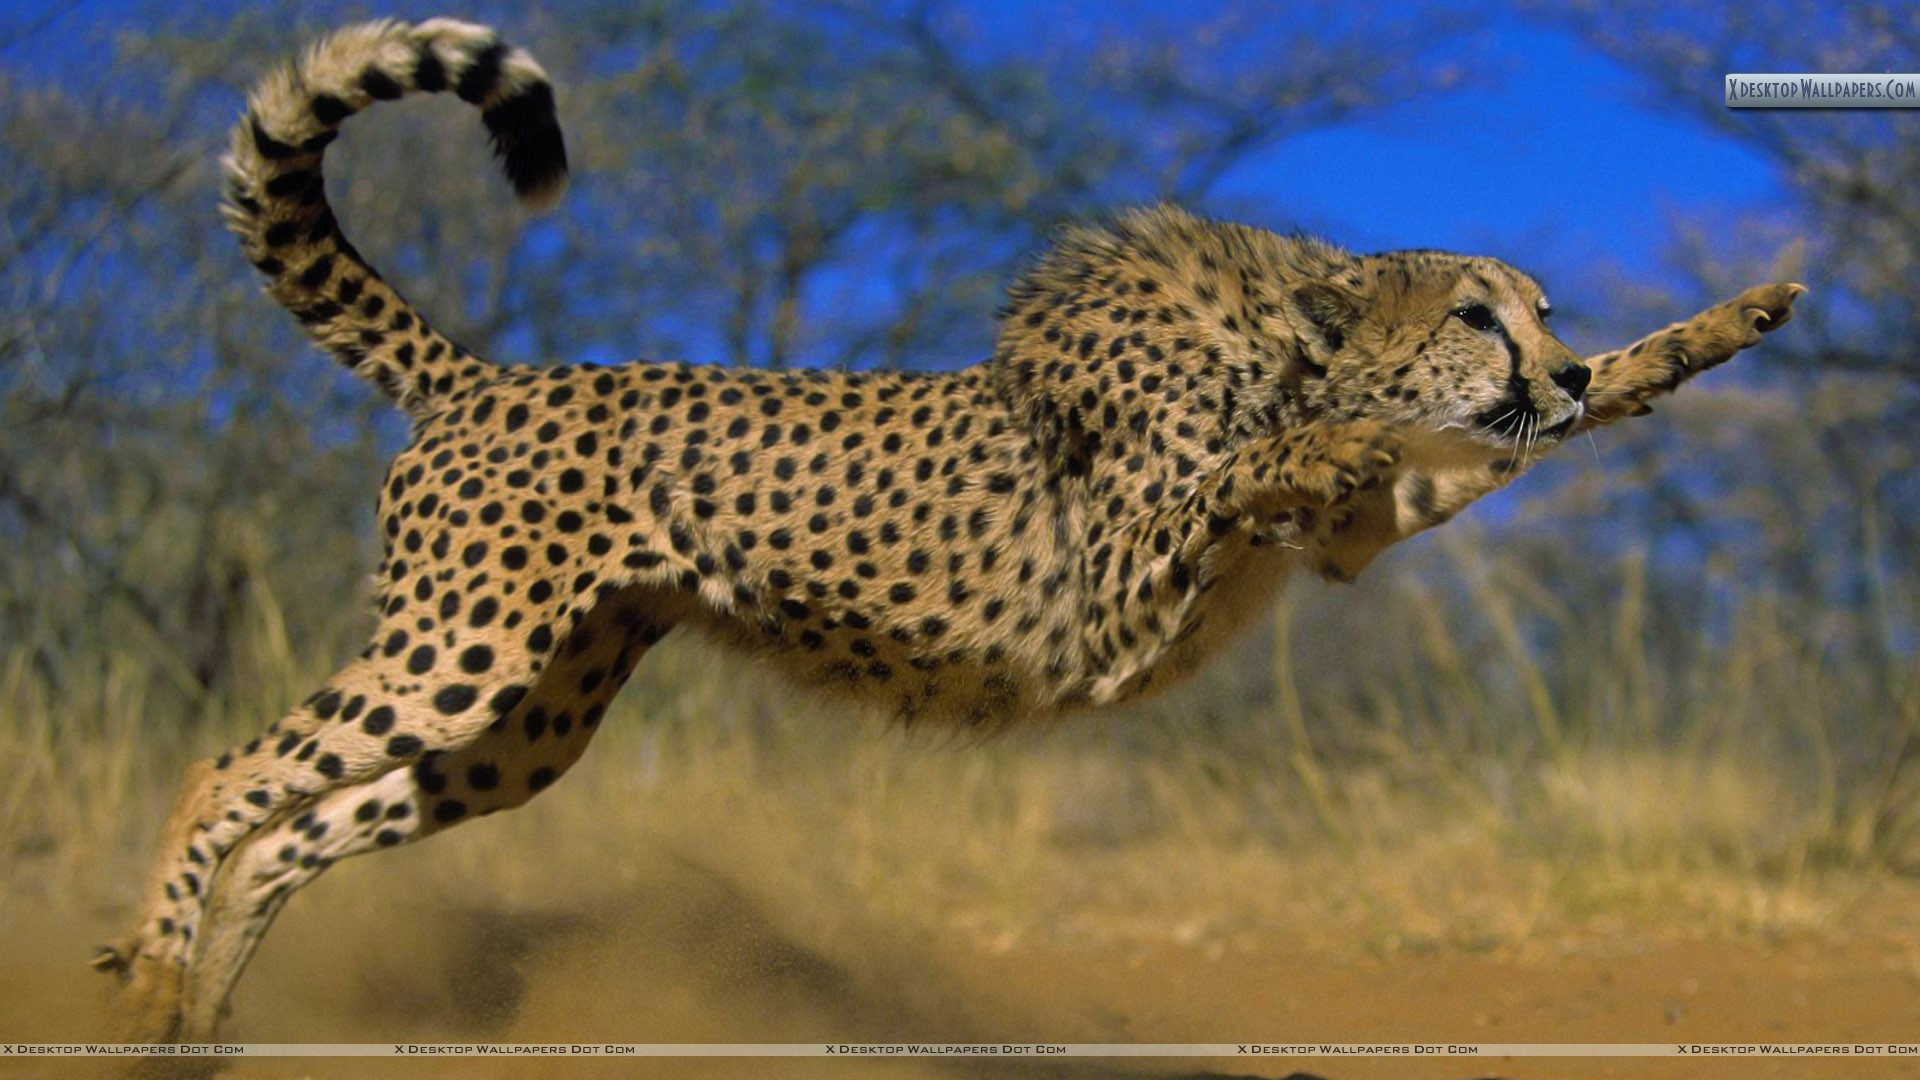 Cheetah | Bouncing Cheetah HD large resolution picture | Mother ...